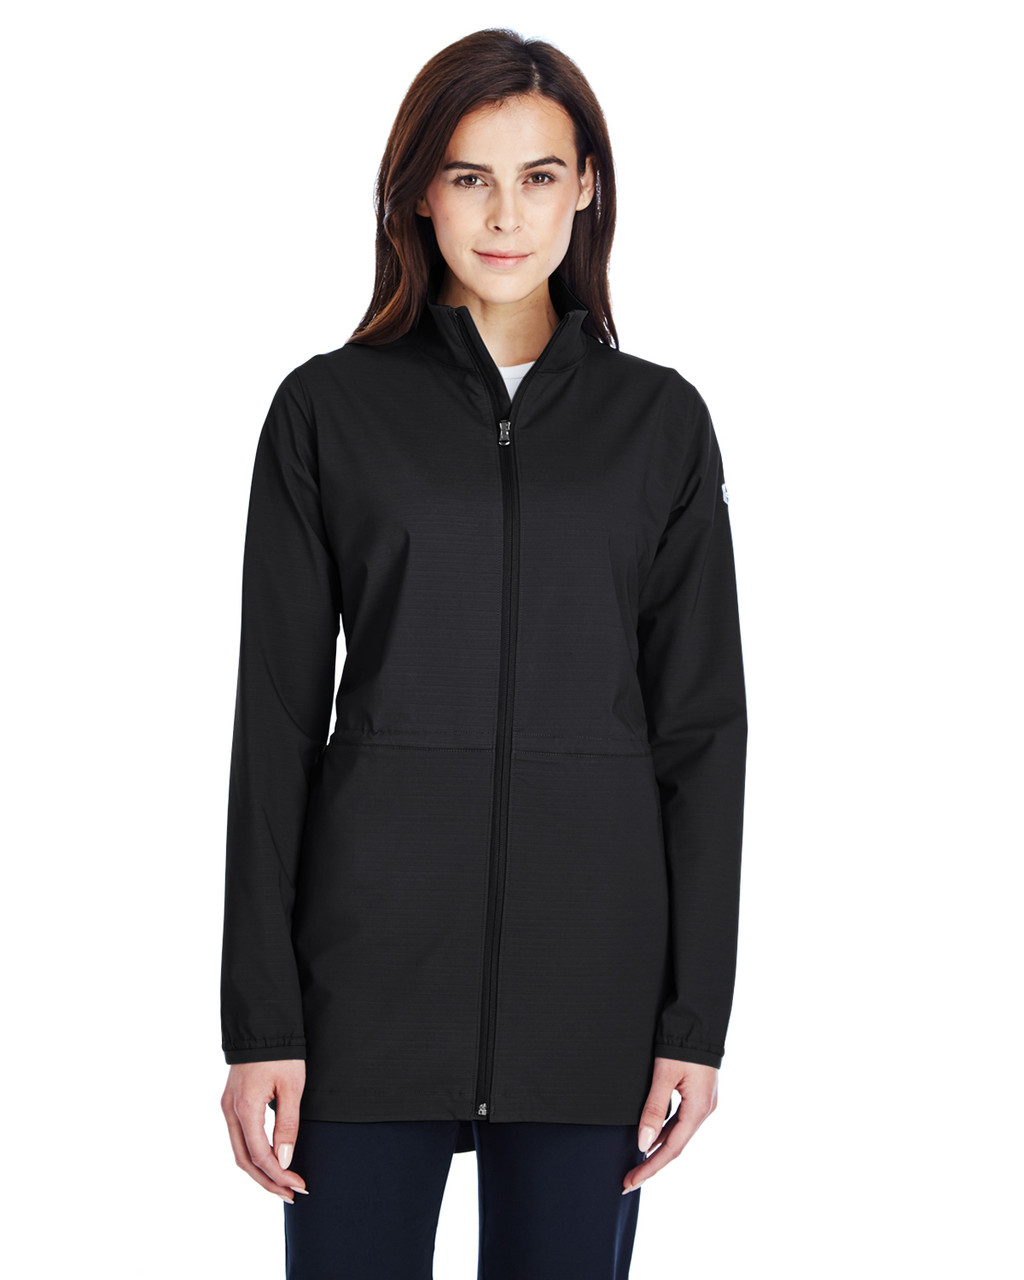 Black/White - 1317222 Under Armour SuperSale Ladies' Corporate Windstrike Jacket | BlankClothing.ca